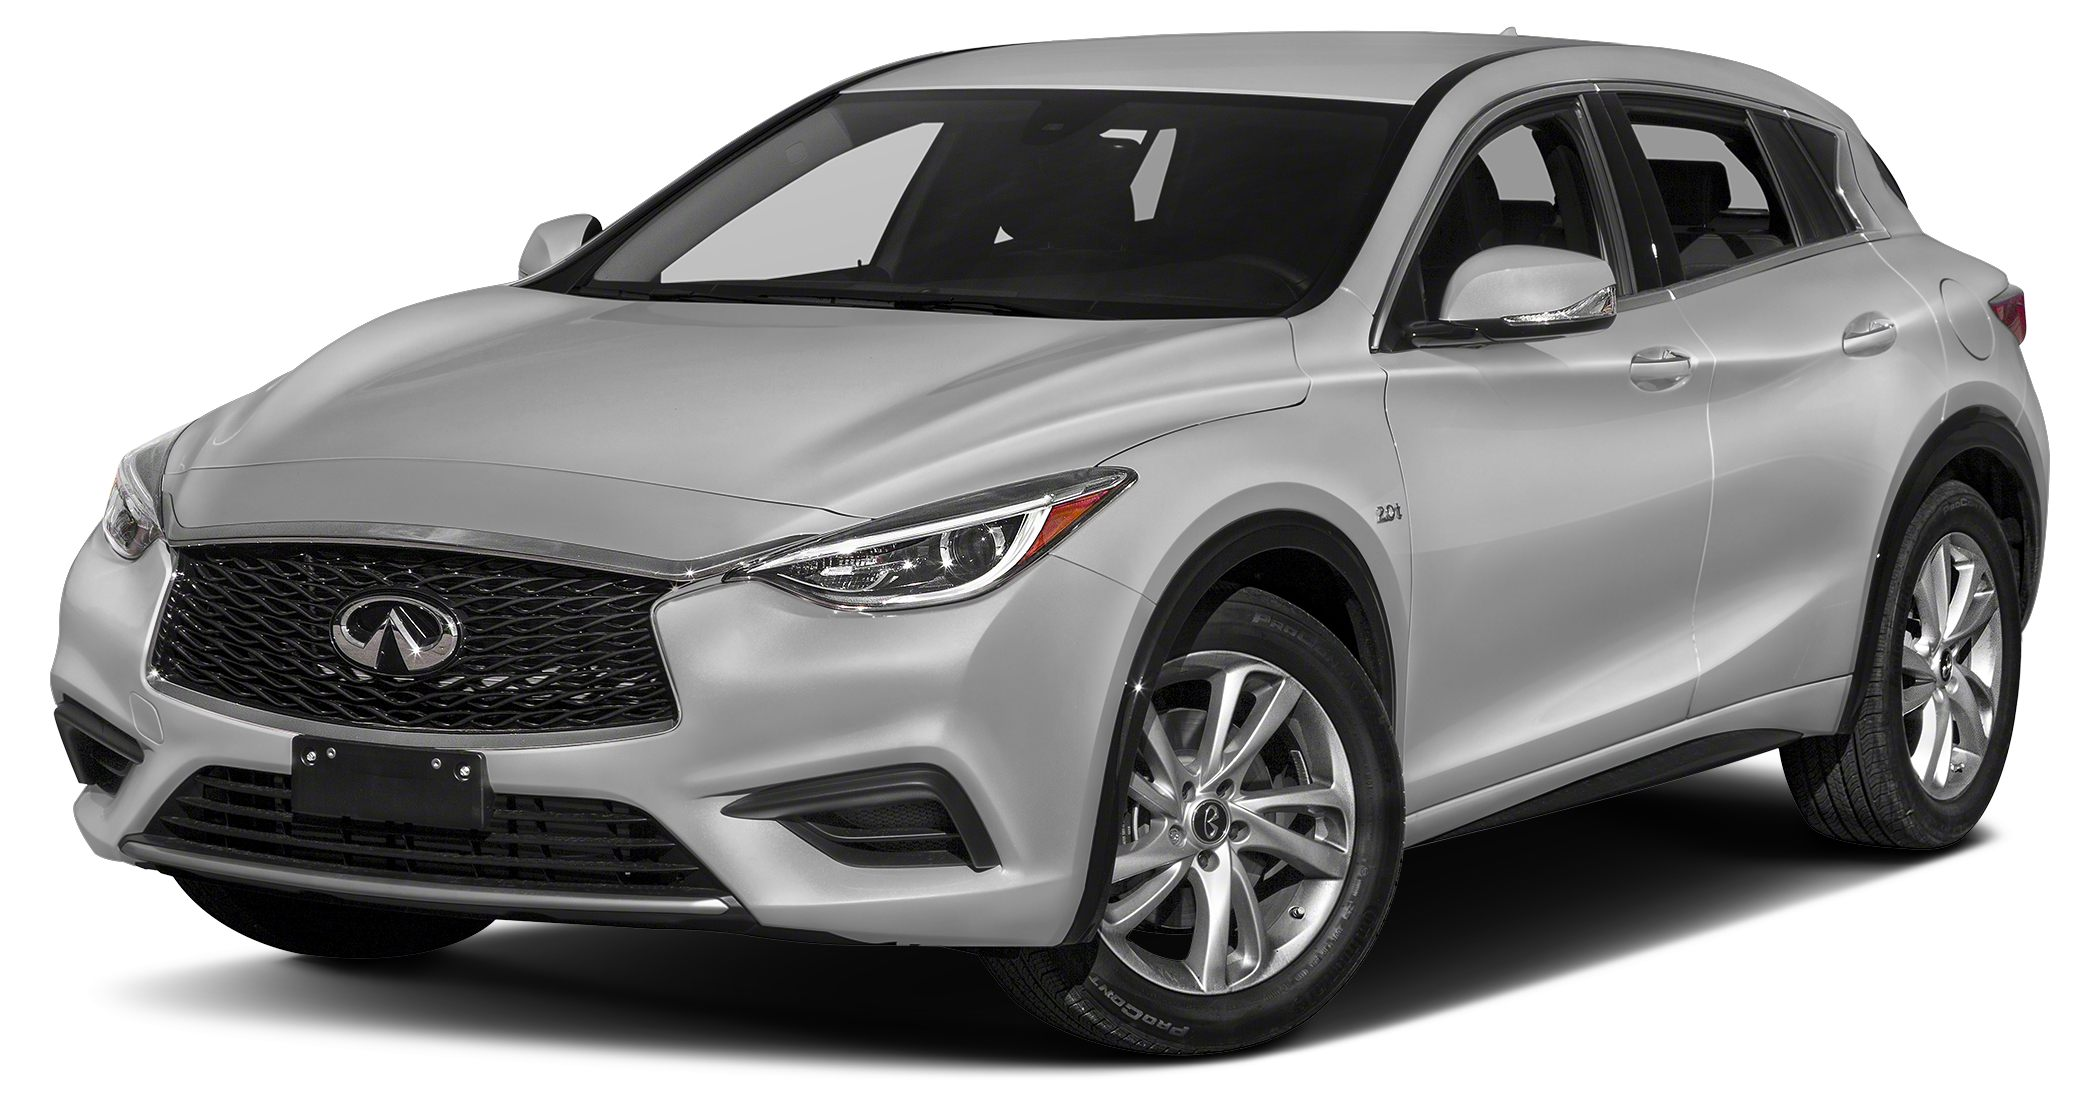 2018 INFINITI QX30 Luxury Only 9992 Miles Delivers 30 Highway MPG and 21 City MPG This INFINITI